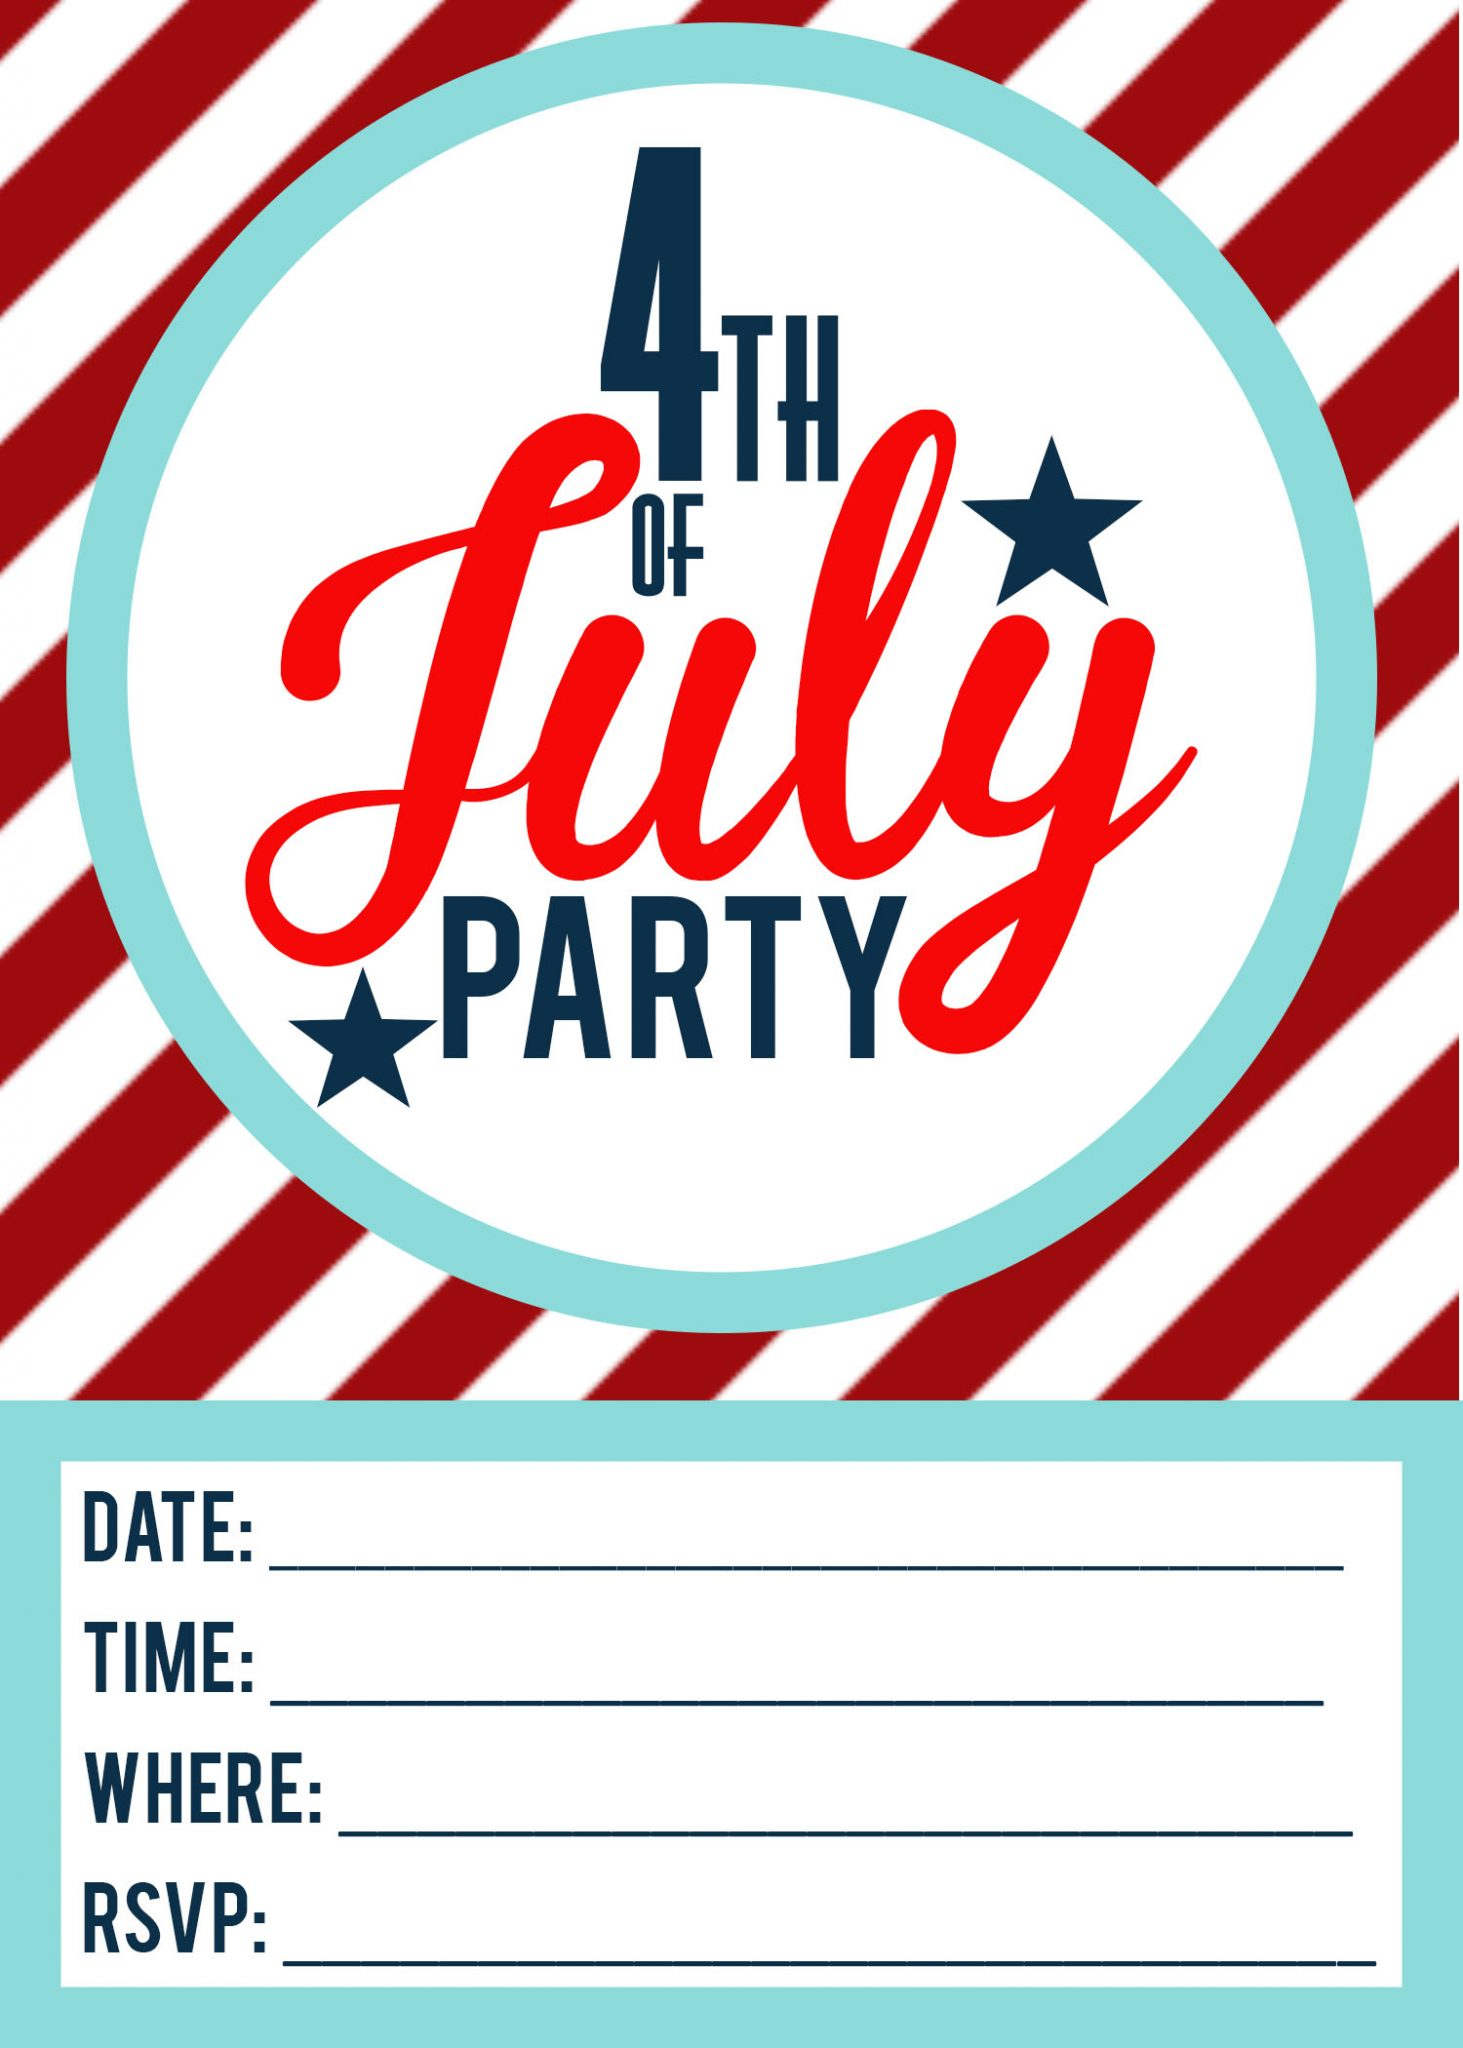 4th of july party invitation koni polycode co